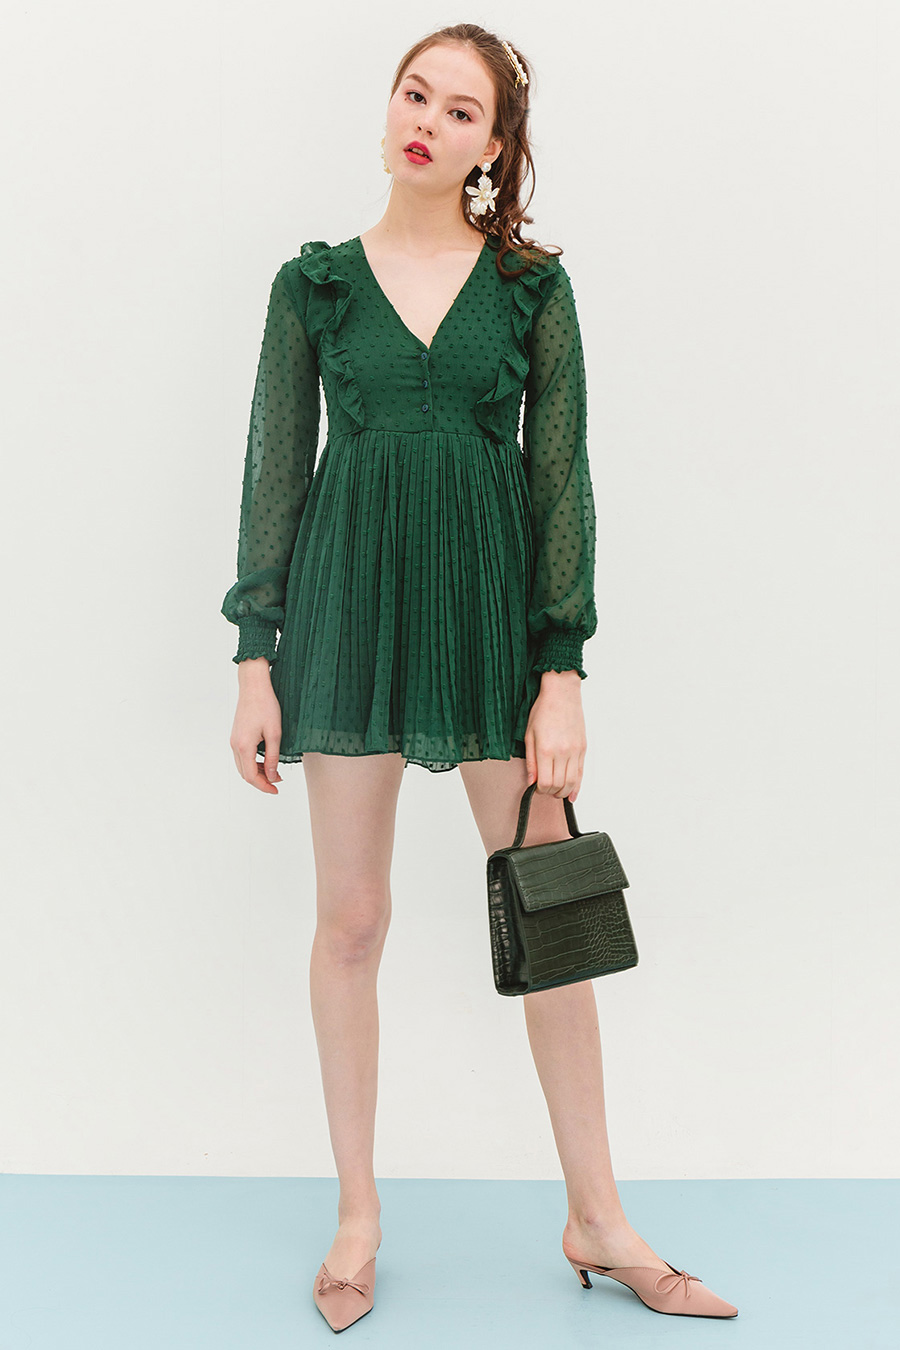 *BO* BEA DRESS PLAYSUIT - JADE